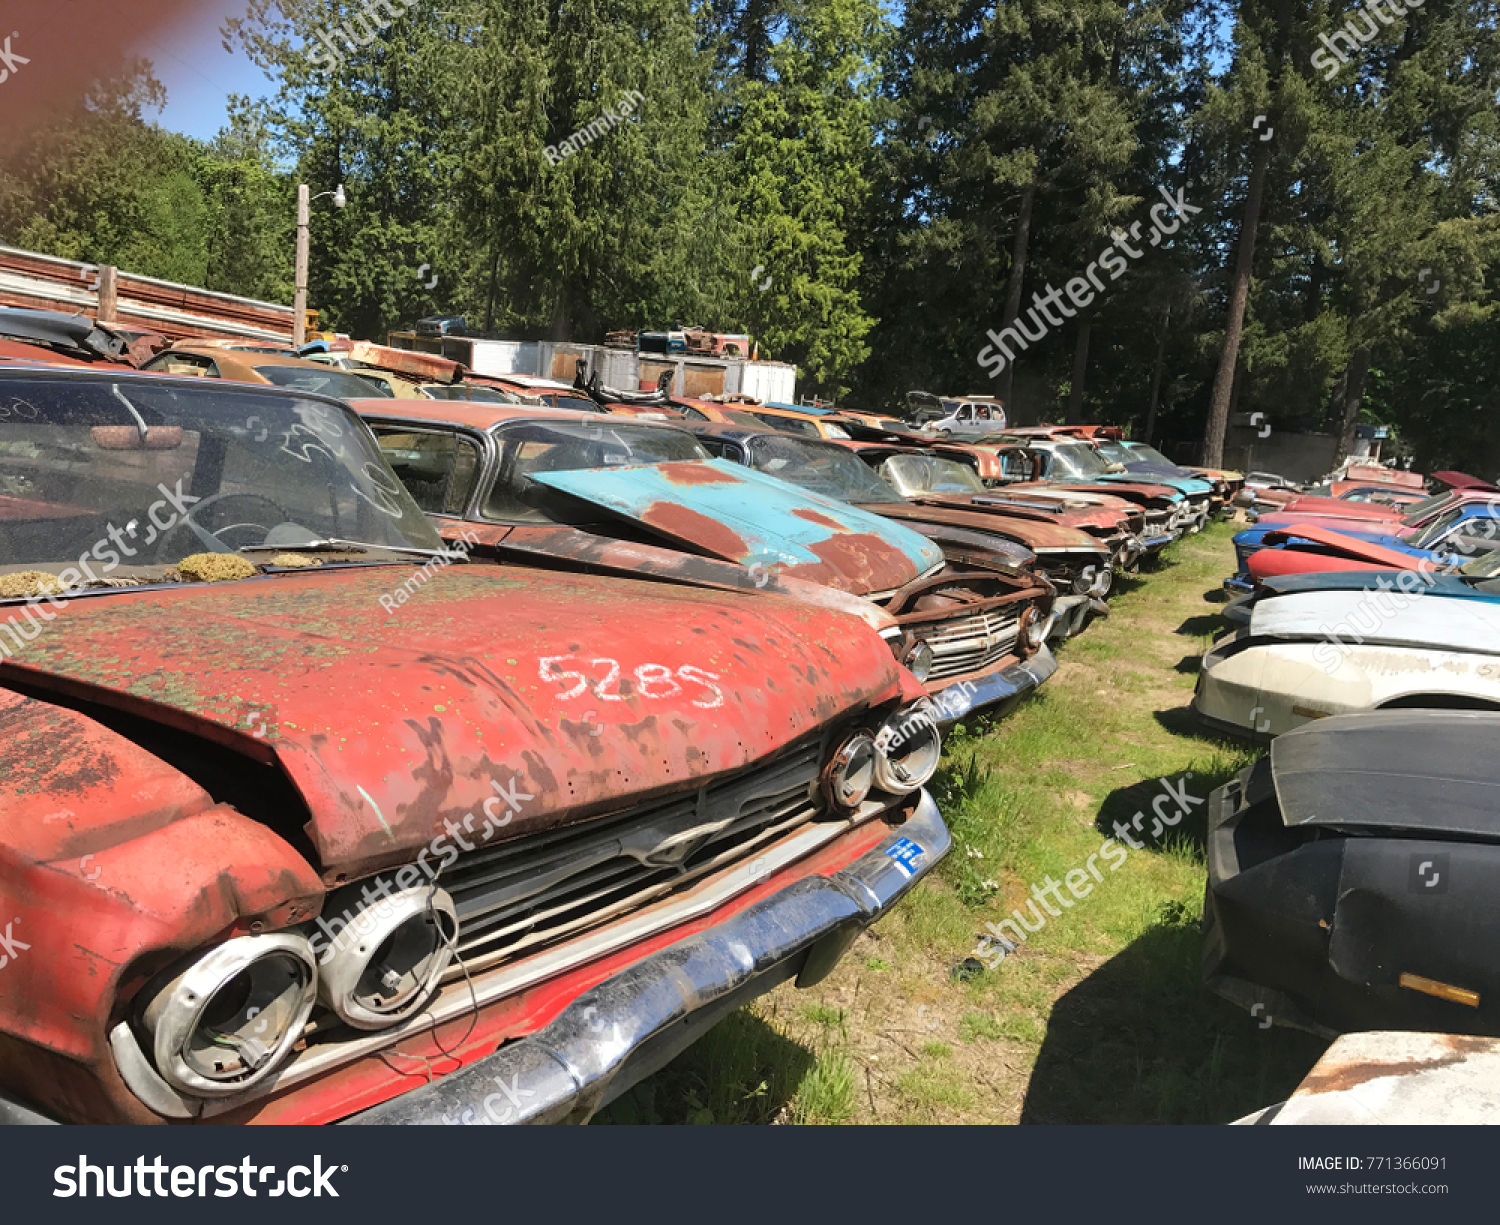 Rusty Junkyard Cars Stock Photo 771366091 - Shutterstock